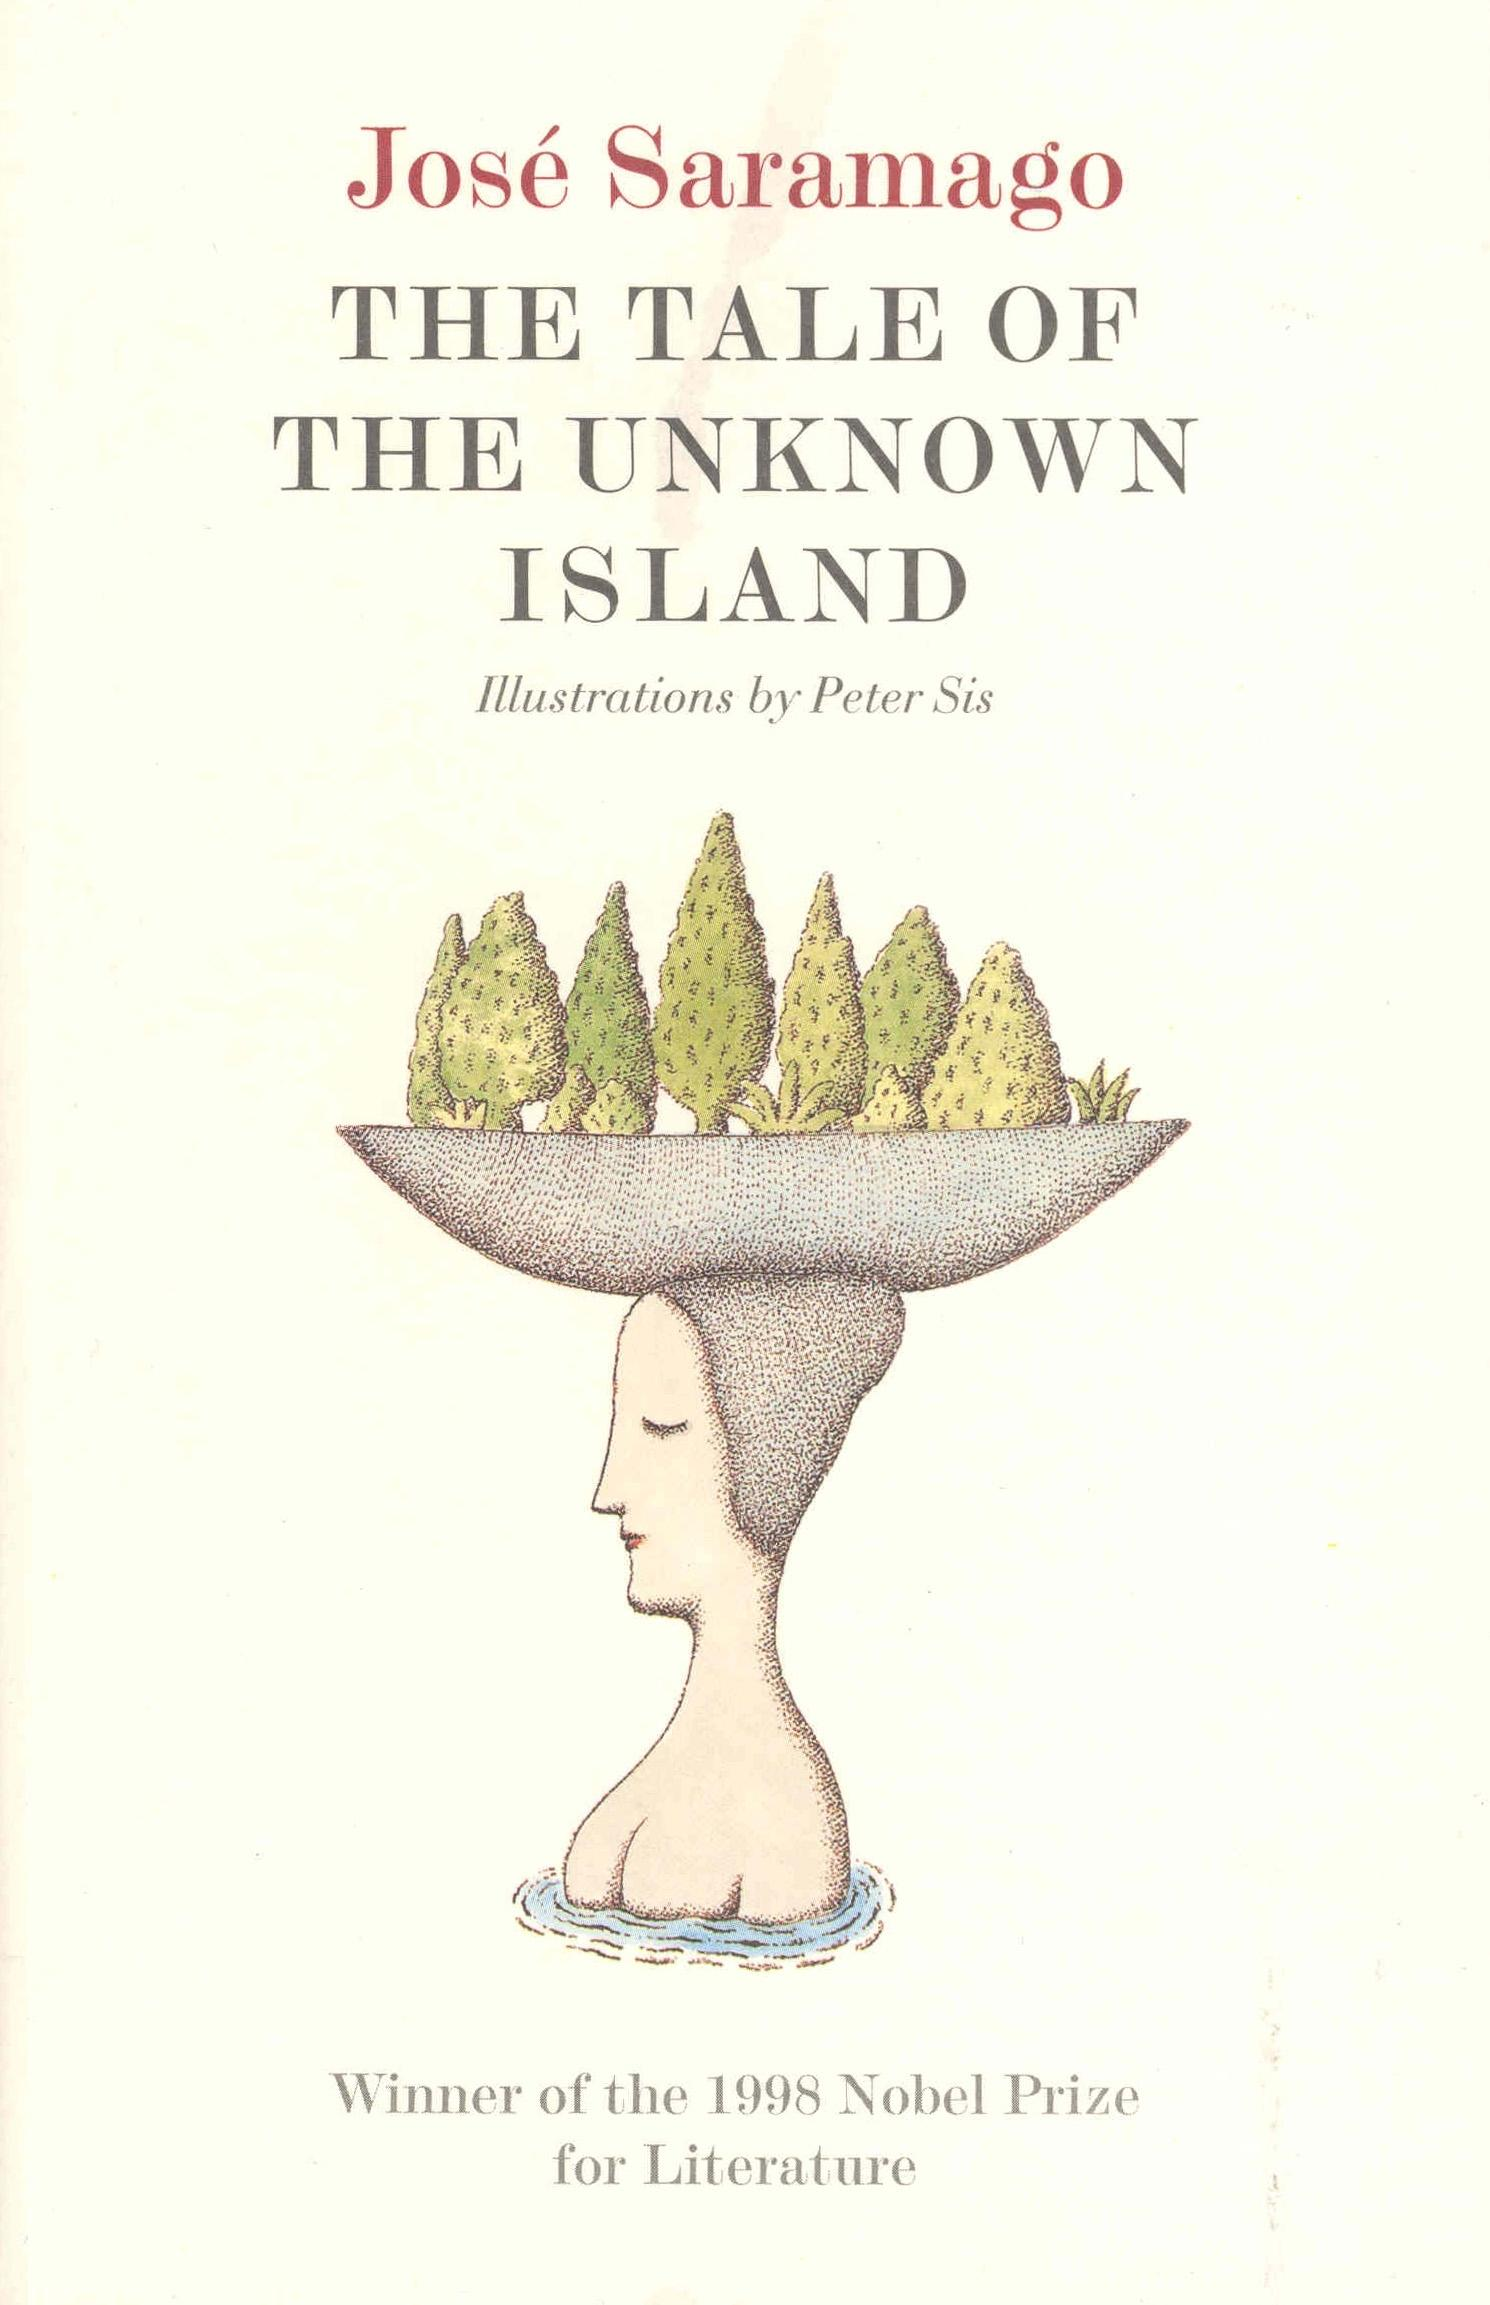 The Tale of the Unknown Island